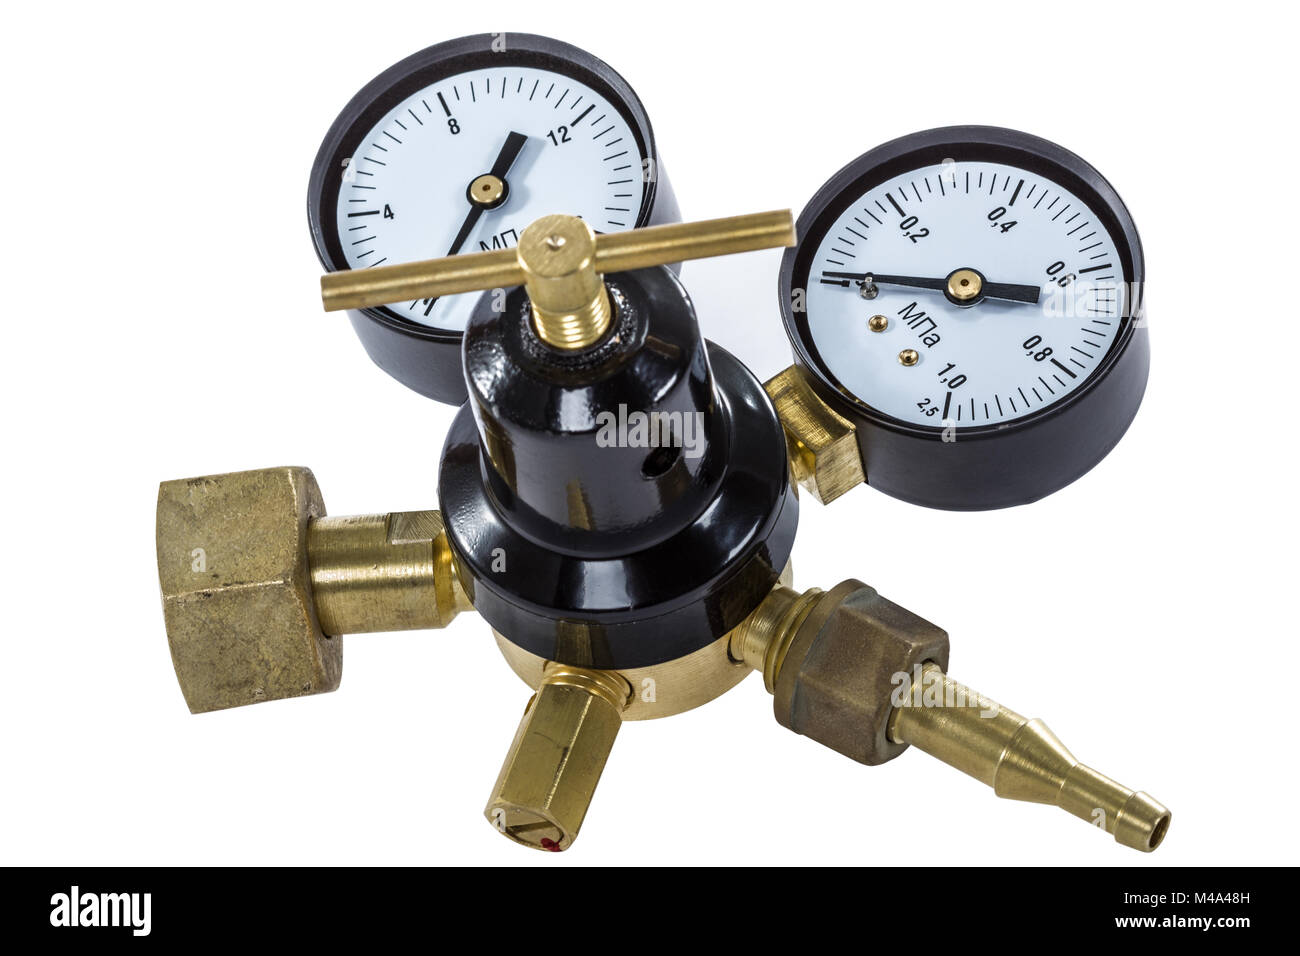 Gas pressure regulator with manometer, isolated with clipping path - Stock Image